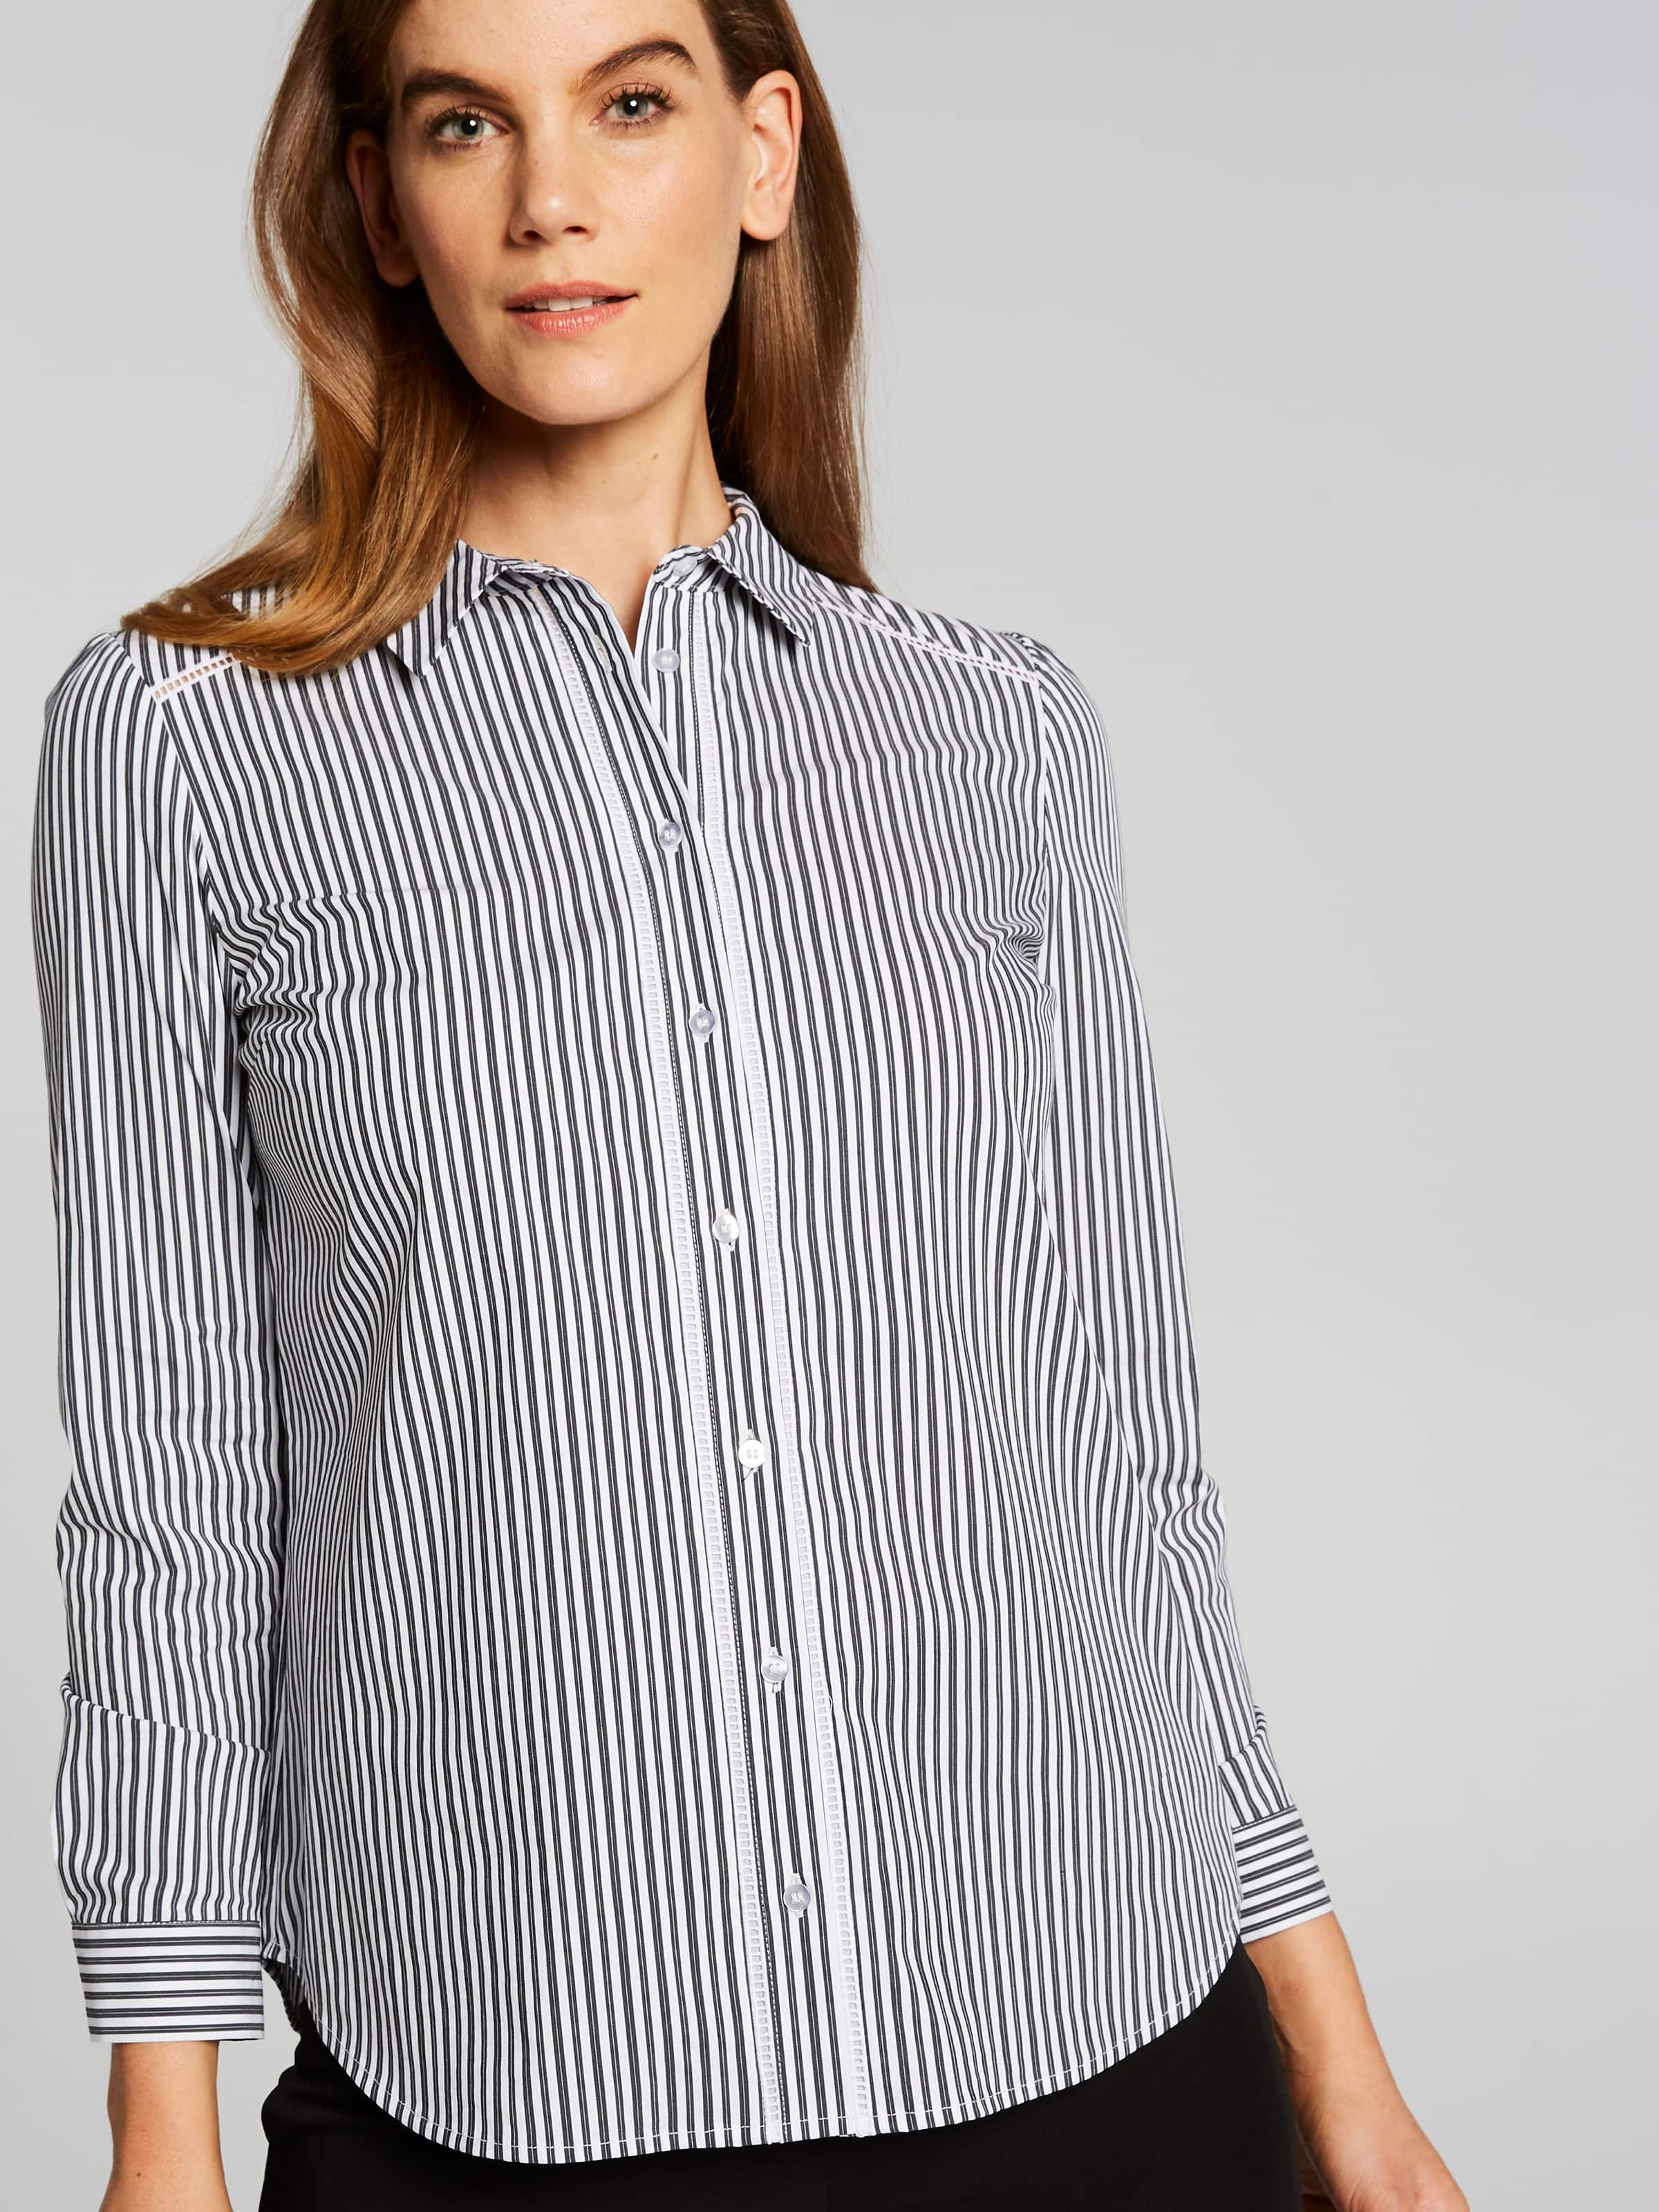 Long Sleeve Brea Collared Poplin Shirt